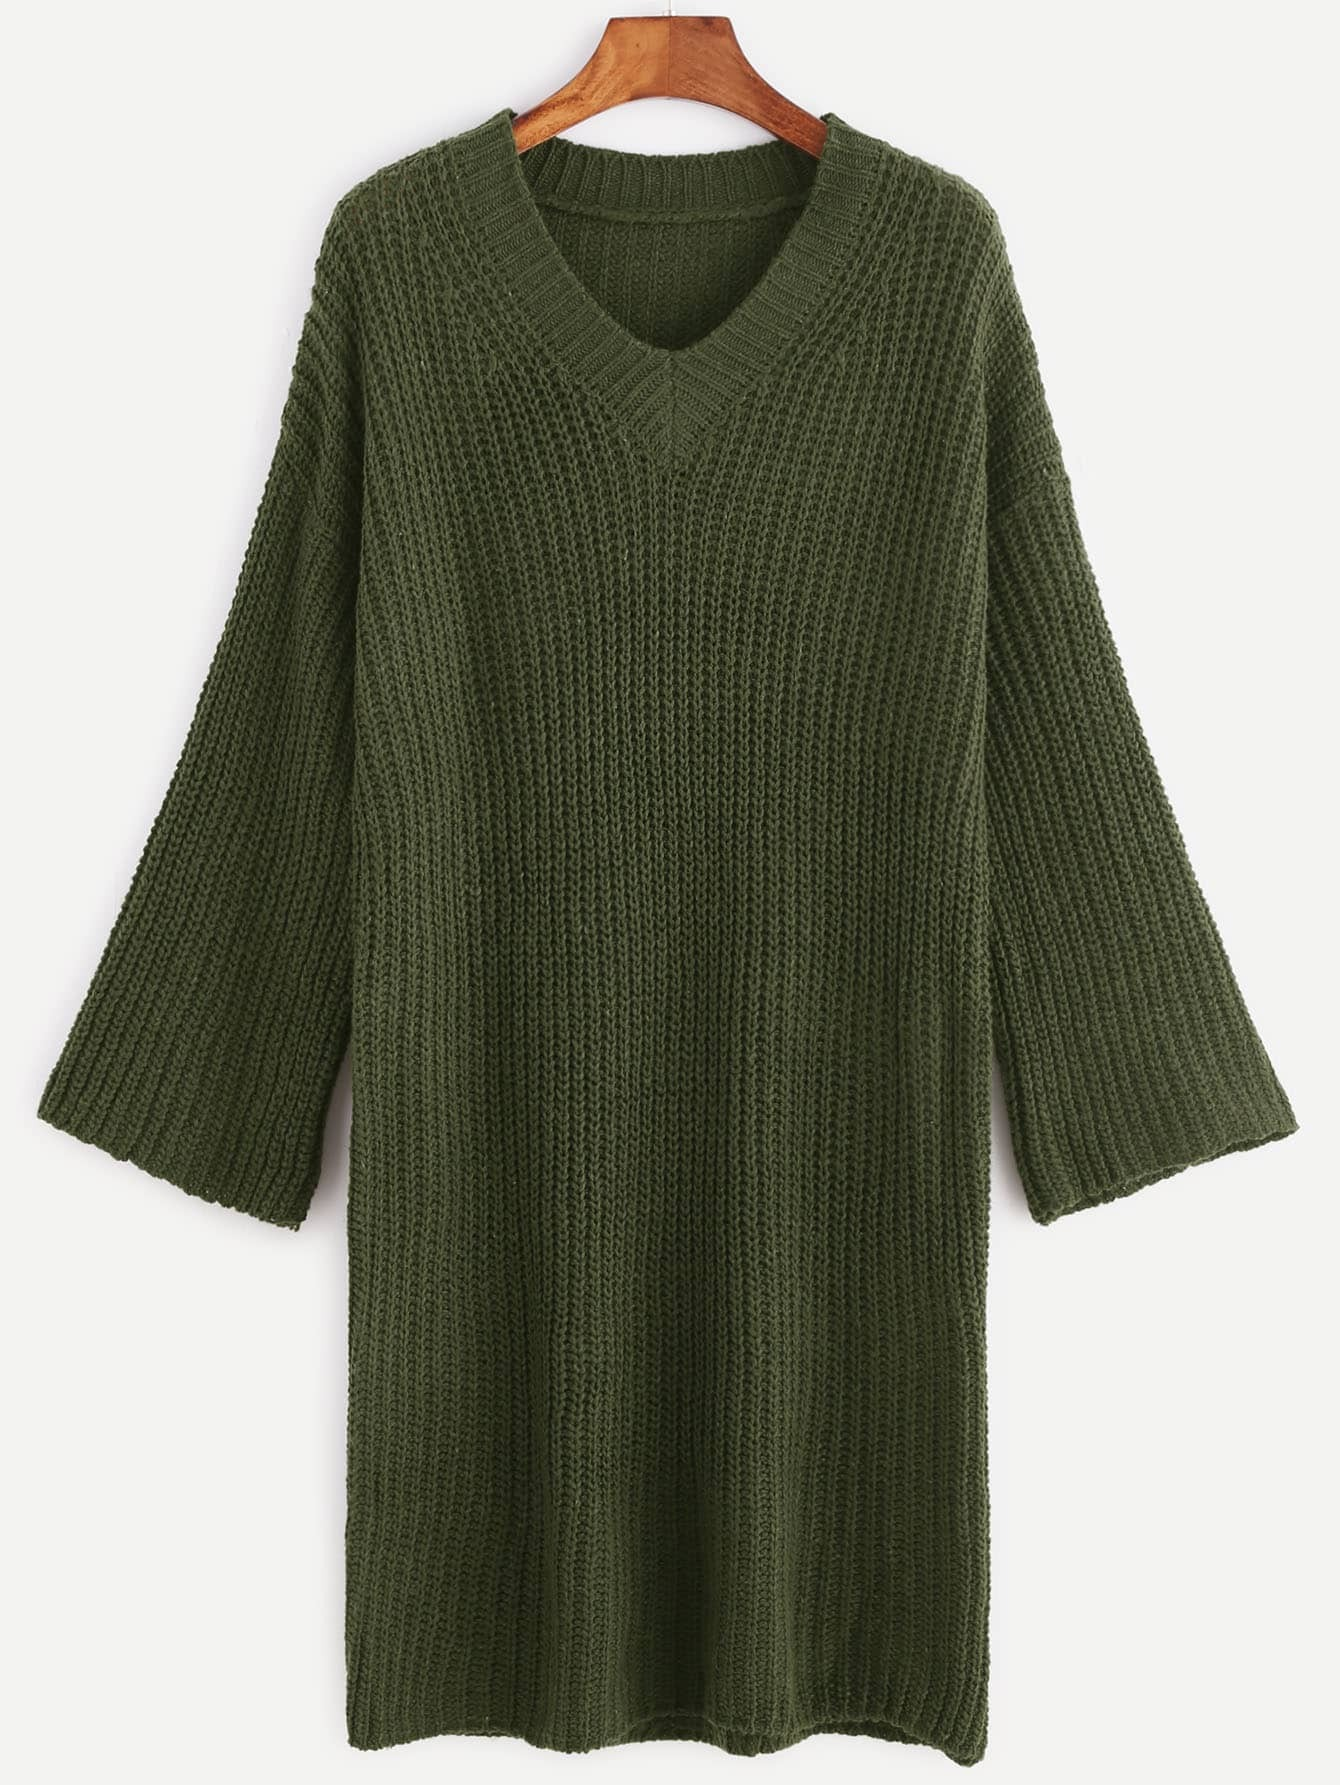 Army Green V Neck Dropped Shoulder Seam Sweater Dress RDRE161107001